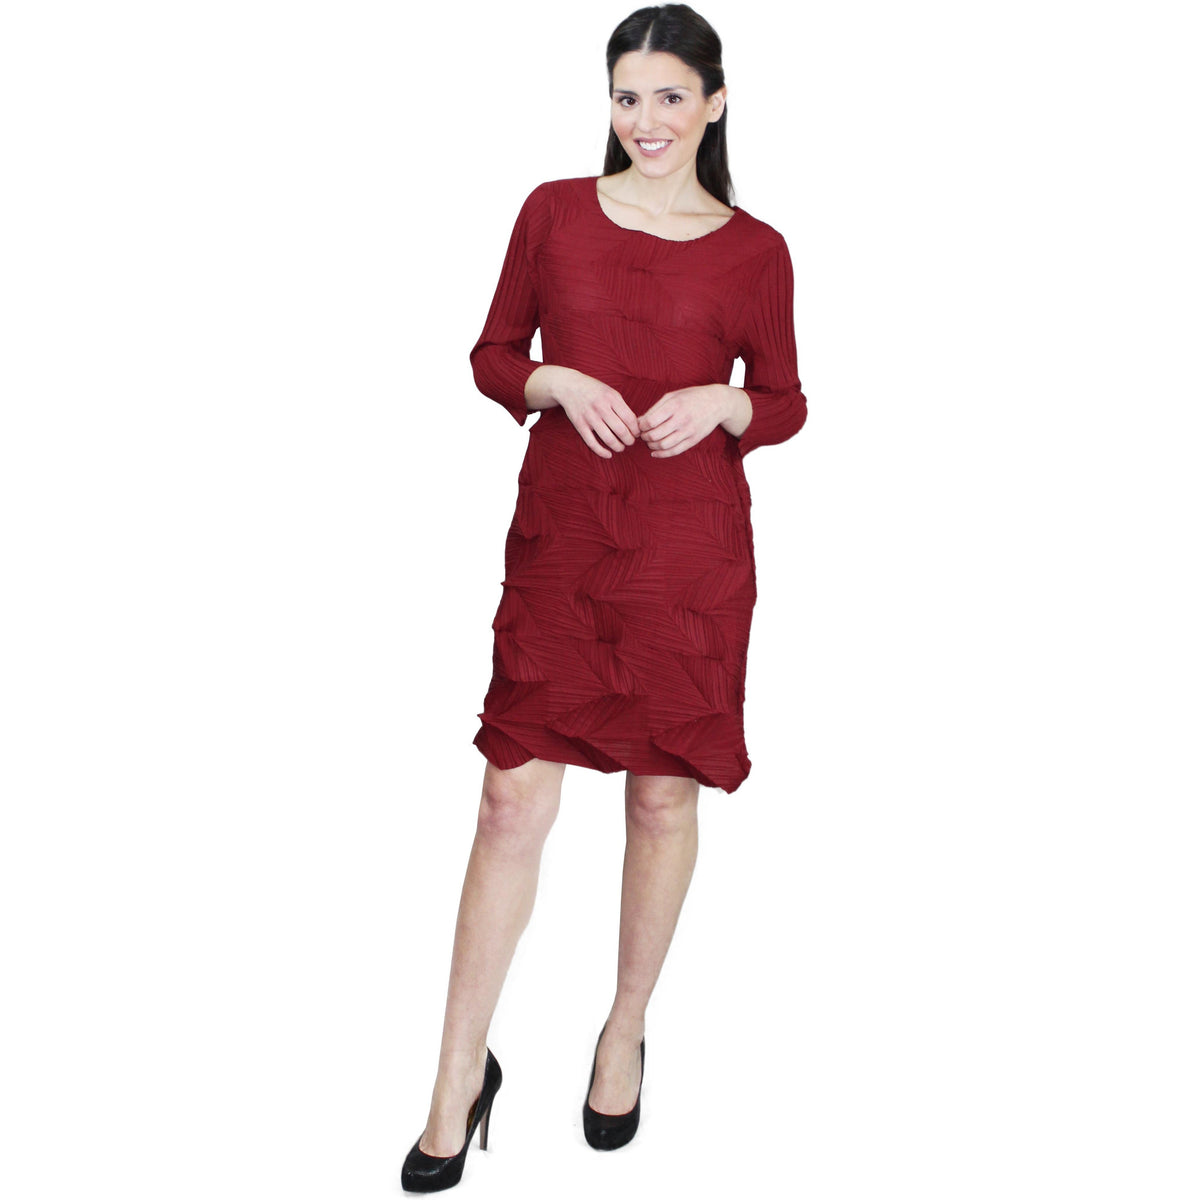 Origami Crinkle Dress - Burgandy